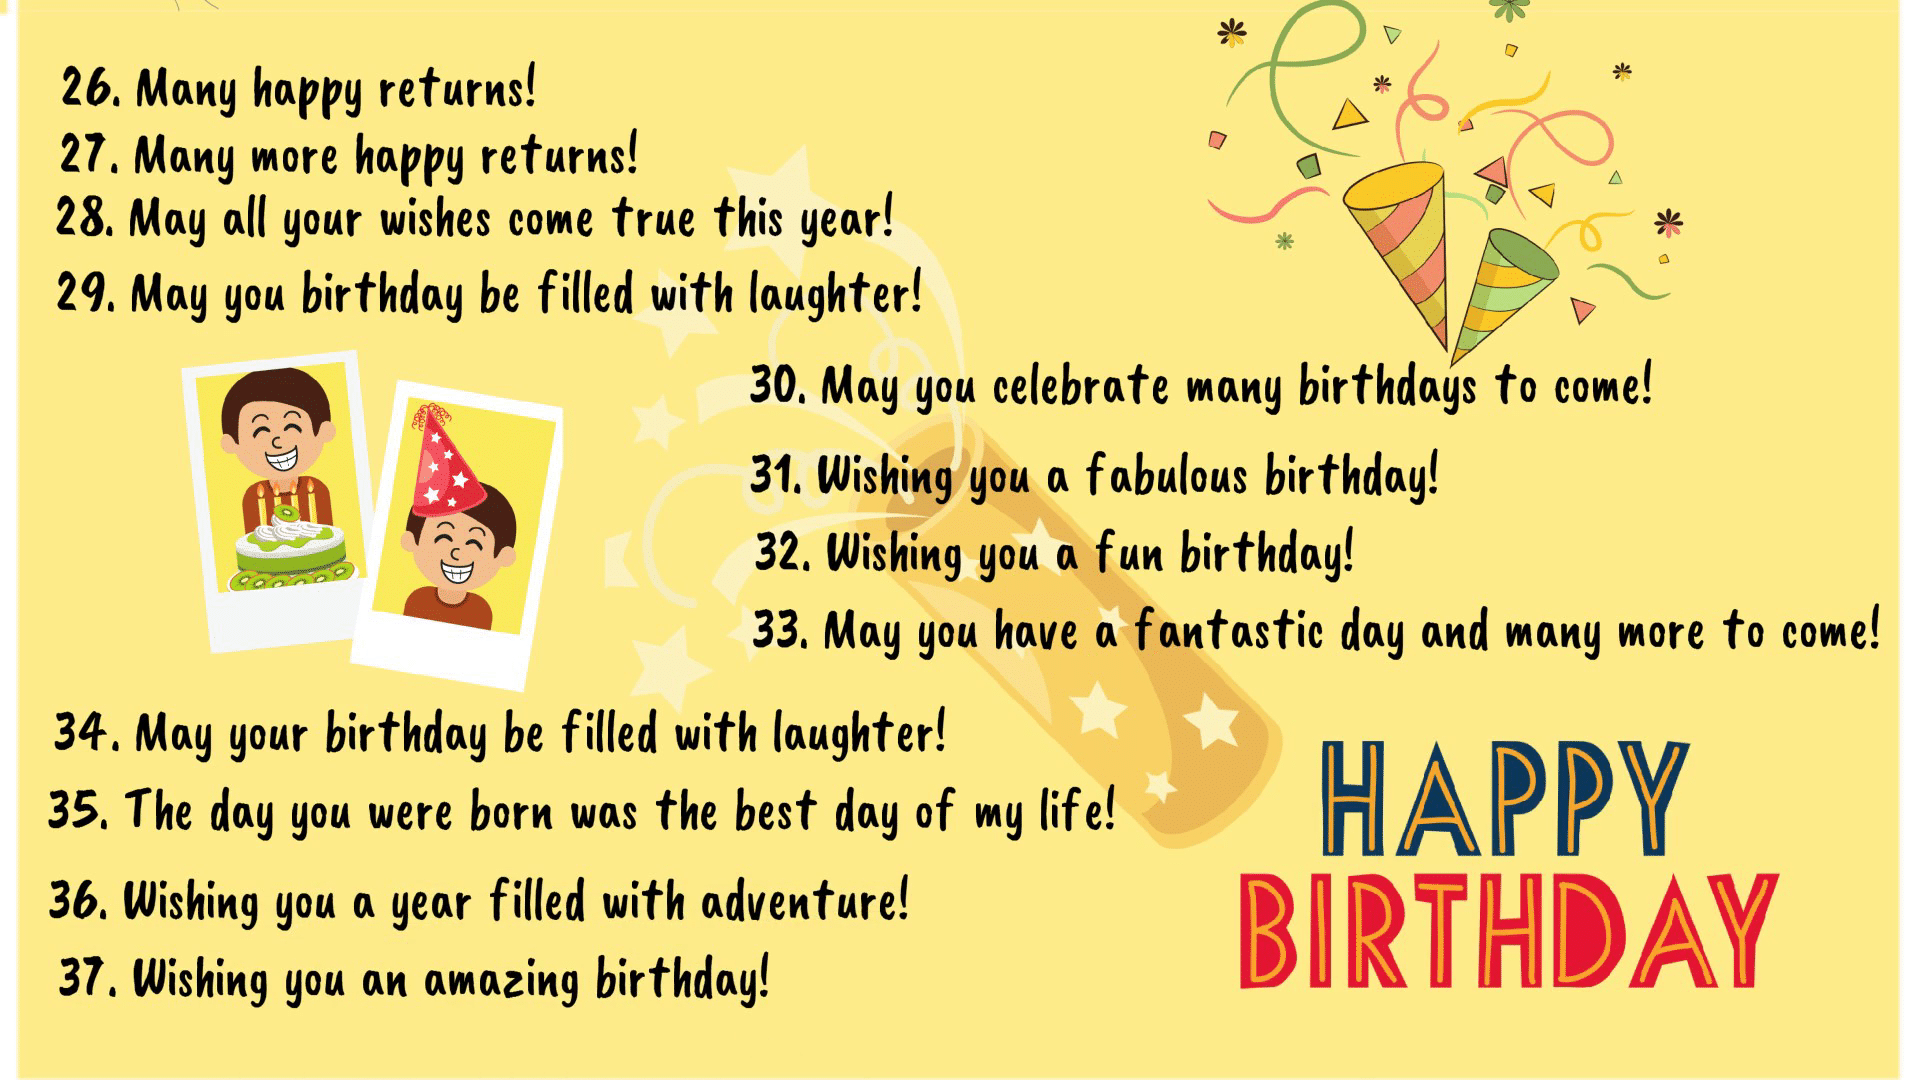 Birthday Wishes: 40+ Best Happy Birthday Wishes to Friends & Others! 4